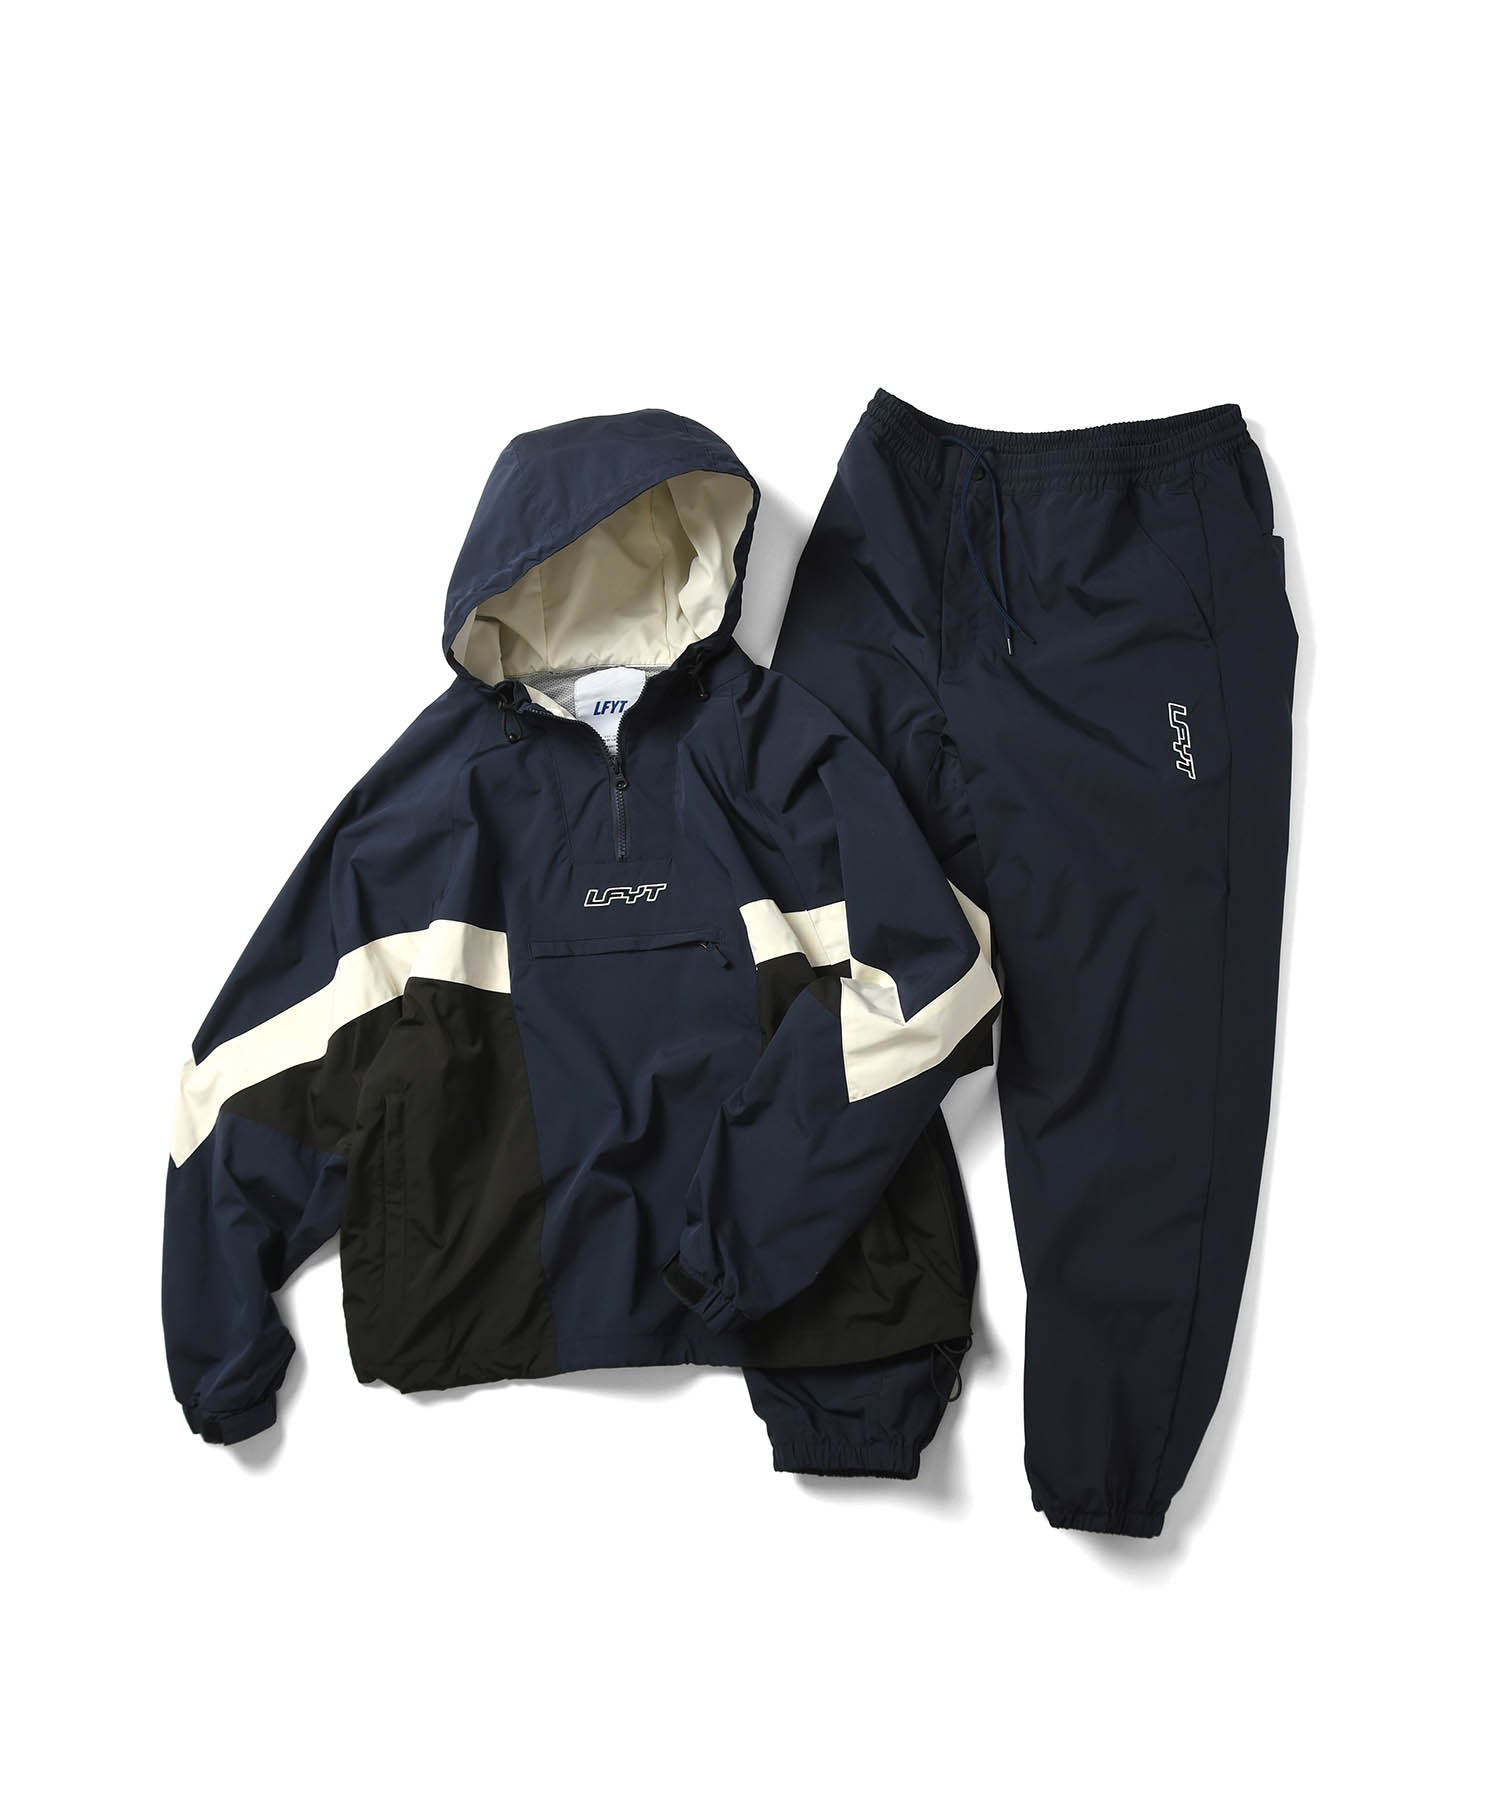 LFYT SPORTS TRACK PANTS LS211201 NAVY